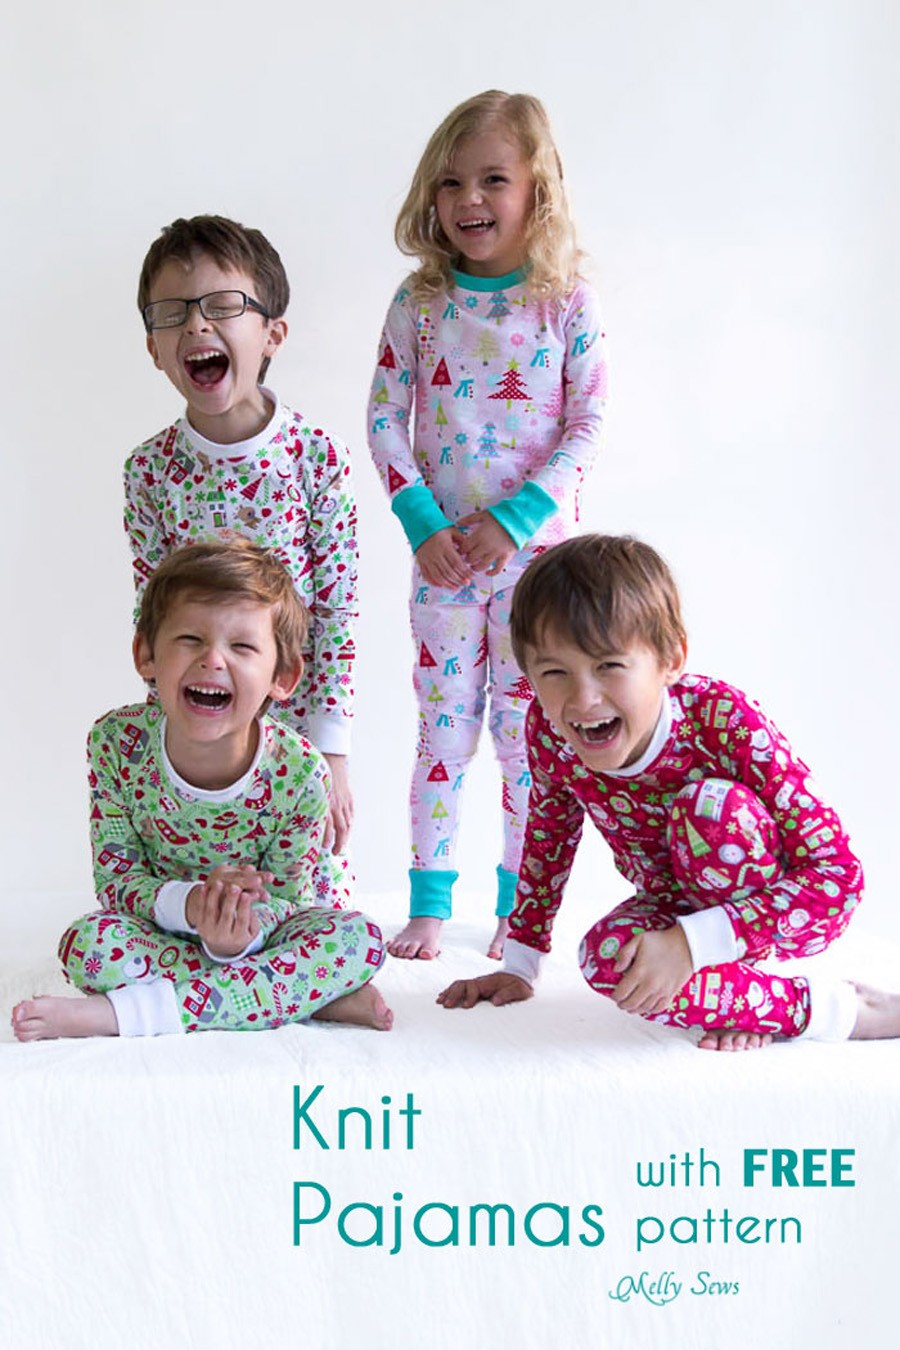 Knit Pajamas